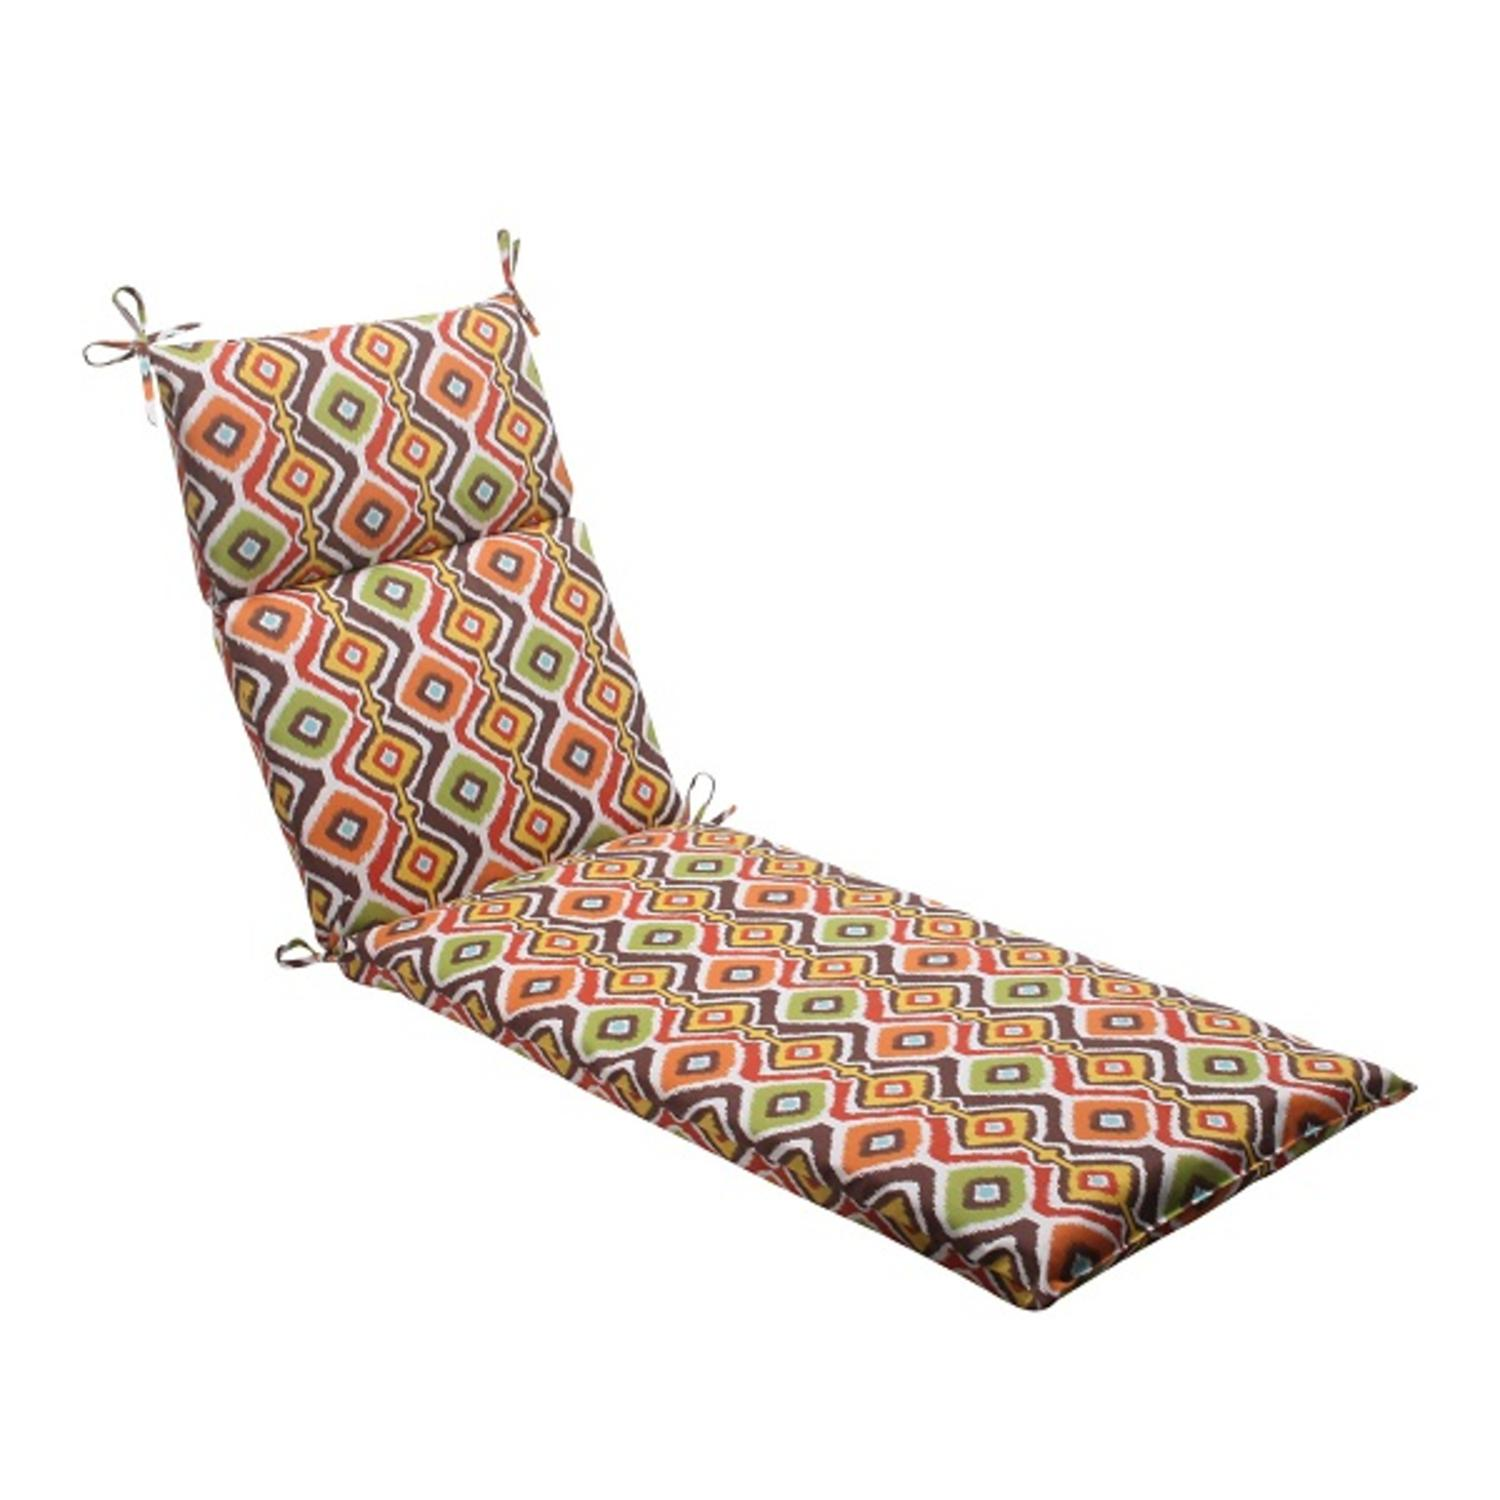 """72.5"""" South Western Bohemian Outdoor Patio Chaise Lounge Cushion with Ties"""